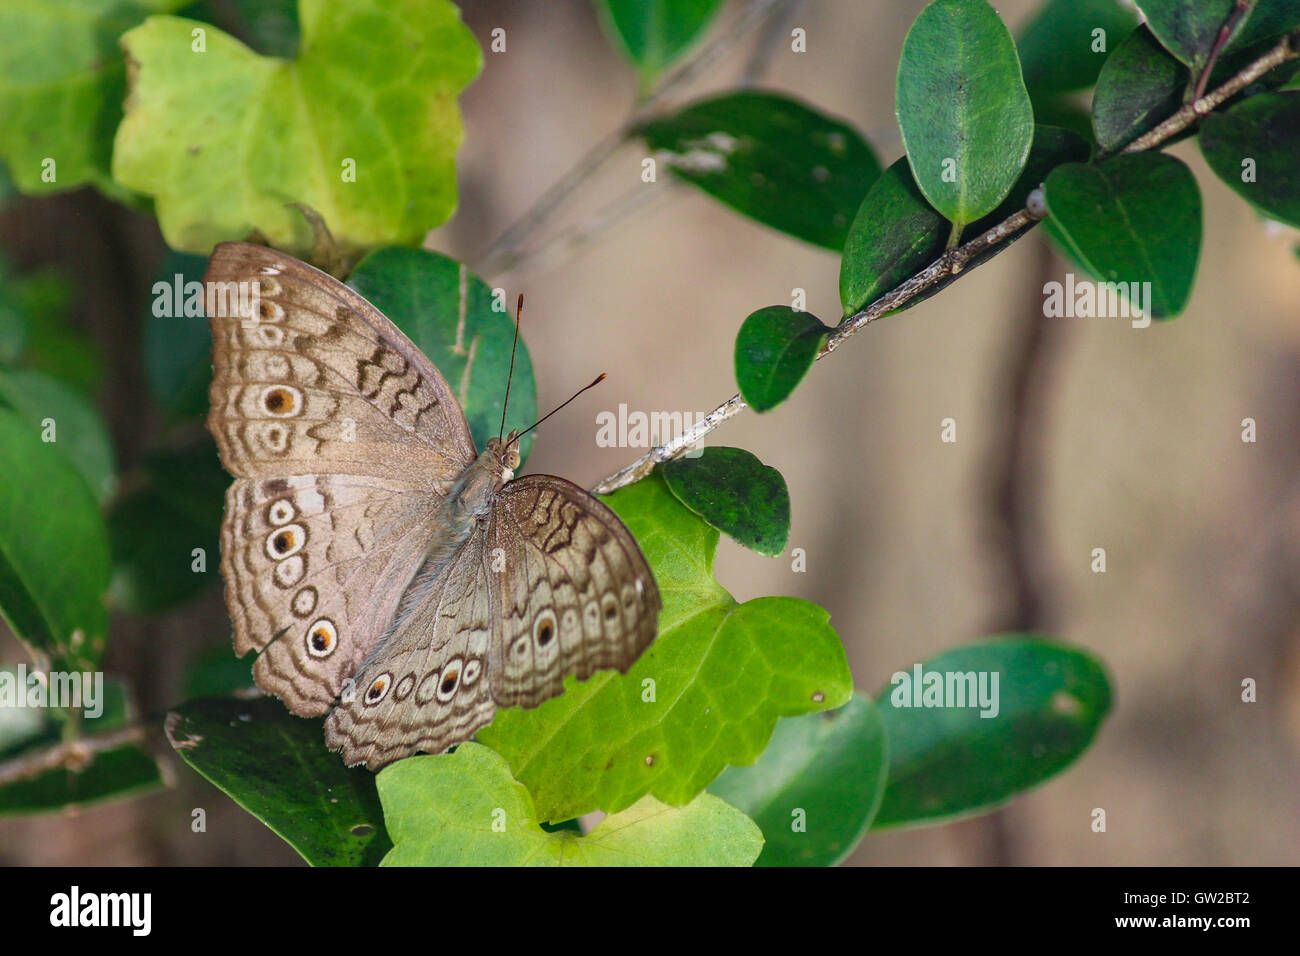 Grigio Pansy Butterfly Junonia atlites ala aperta sul verde, South Asian Butterfly Immagini Stock